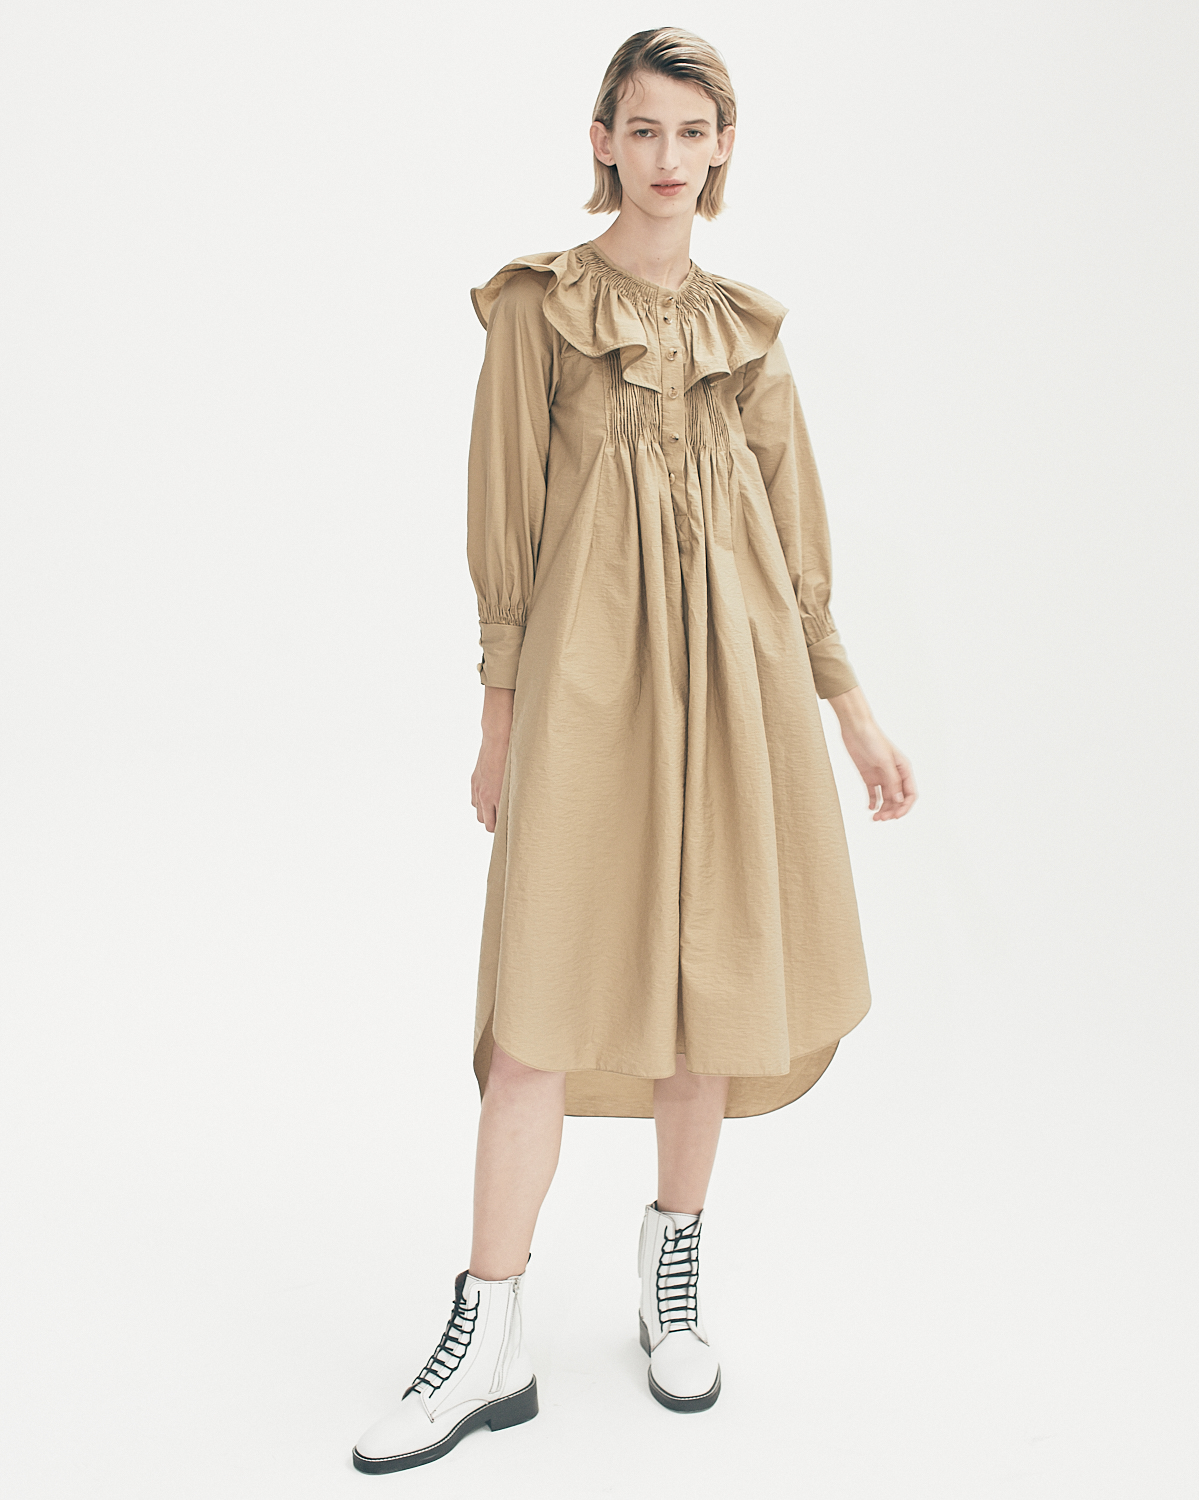 Textured Cotton Frill Neck Dress by Teija on curated-crowd.com